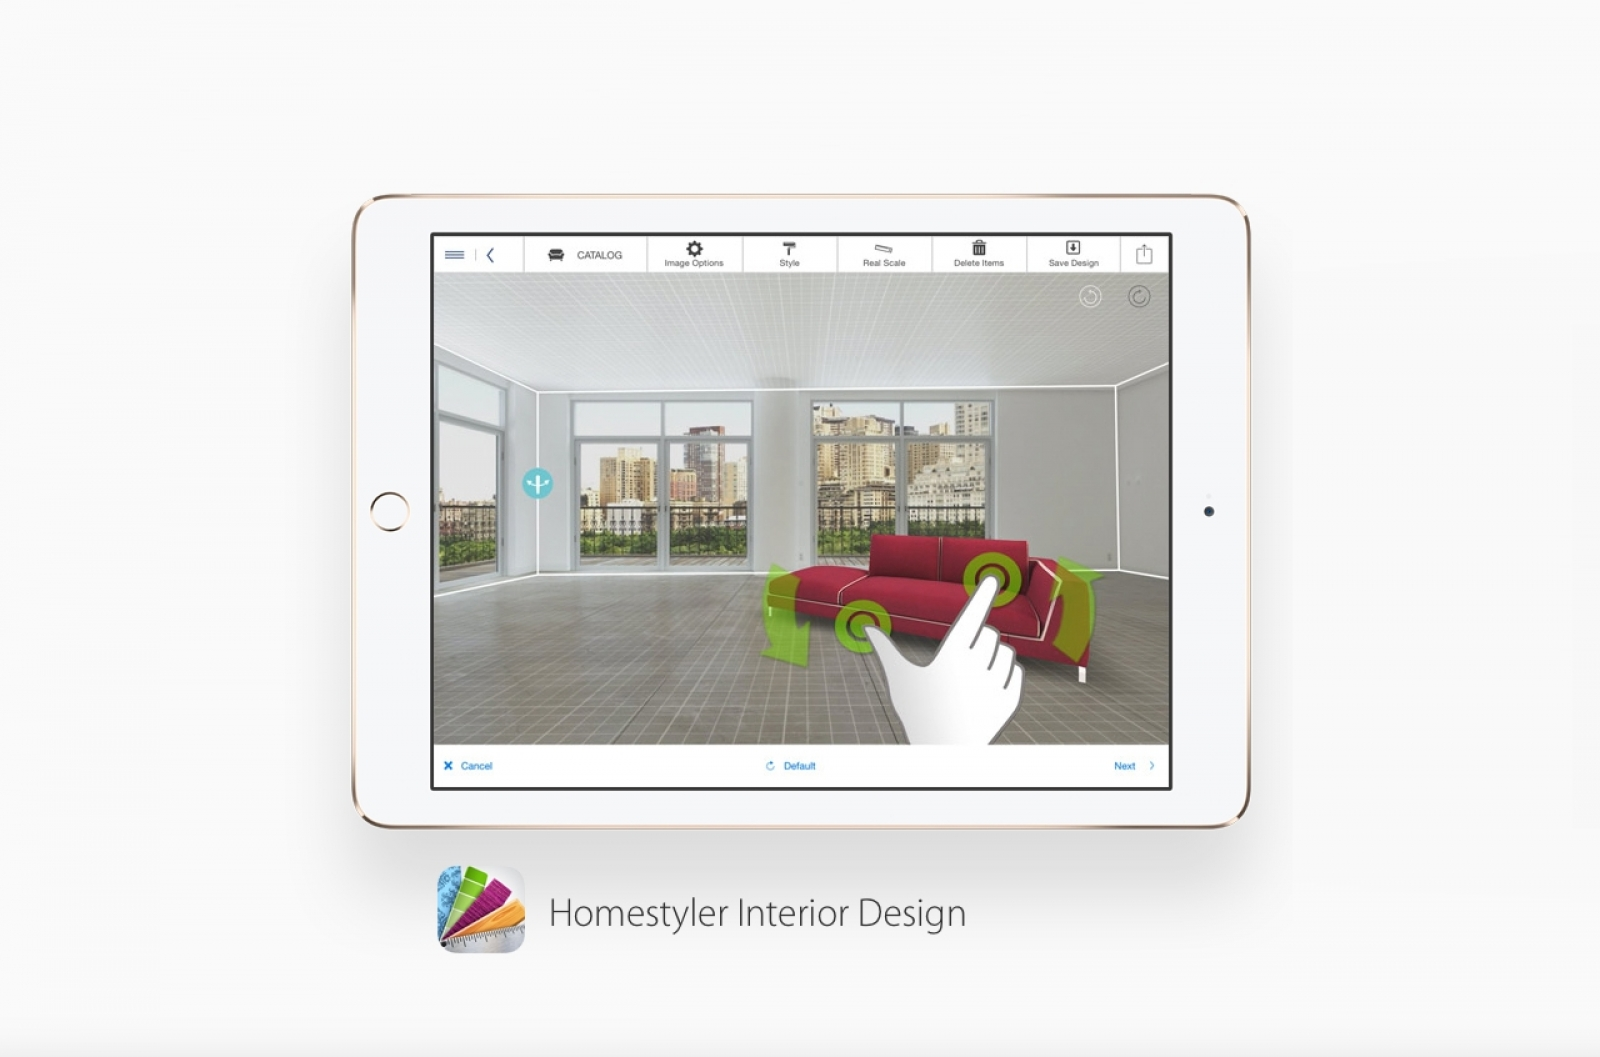 Homestyler Interior Design App For Android Awesome Home